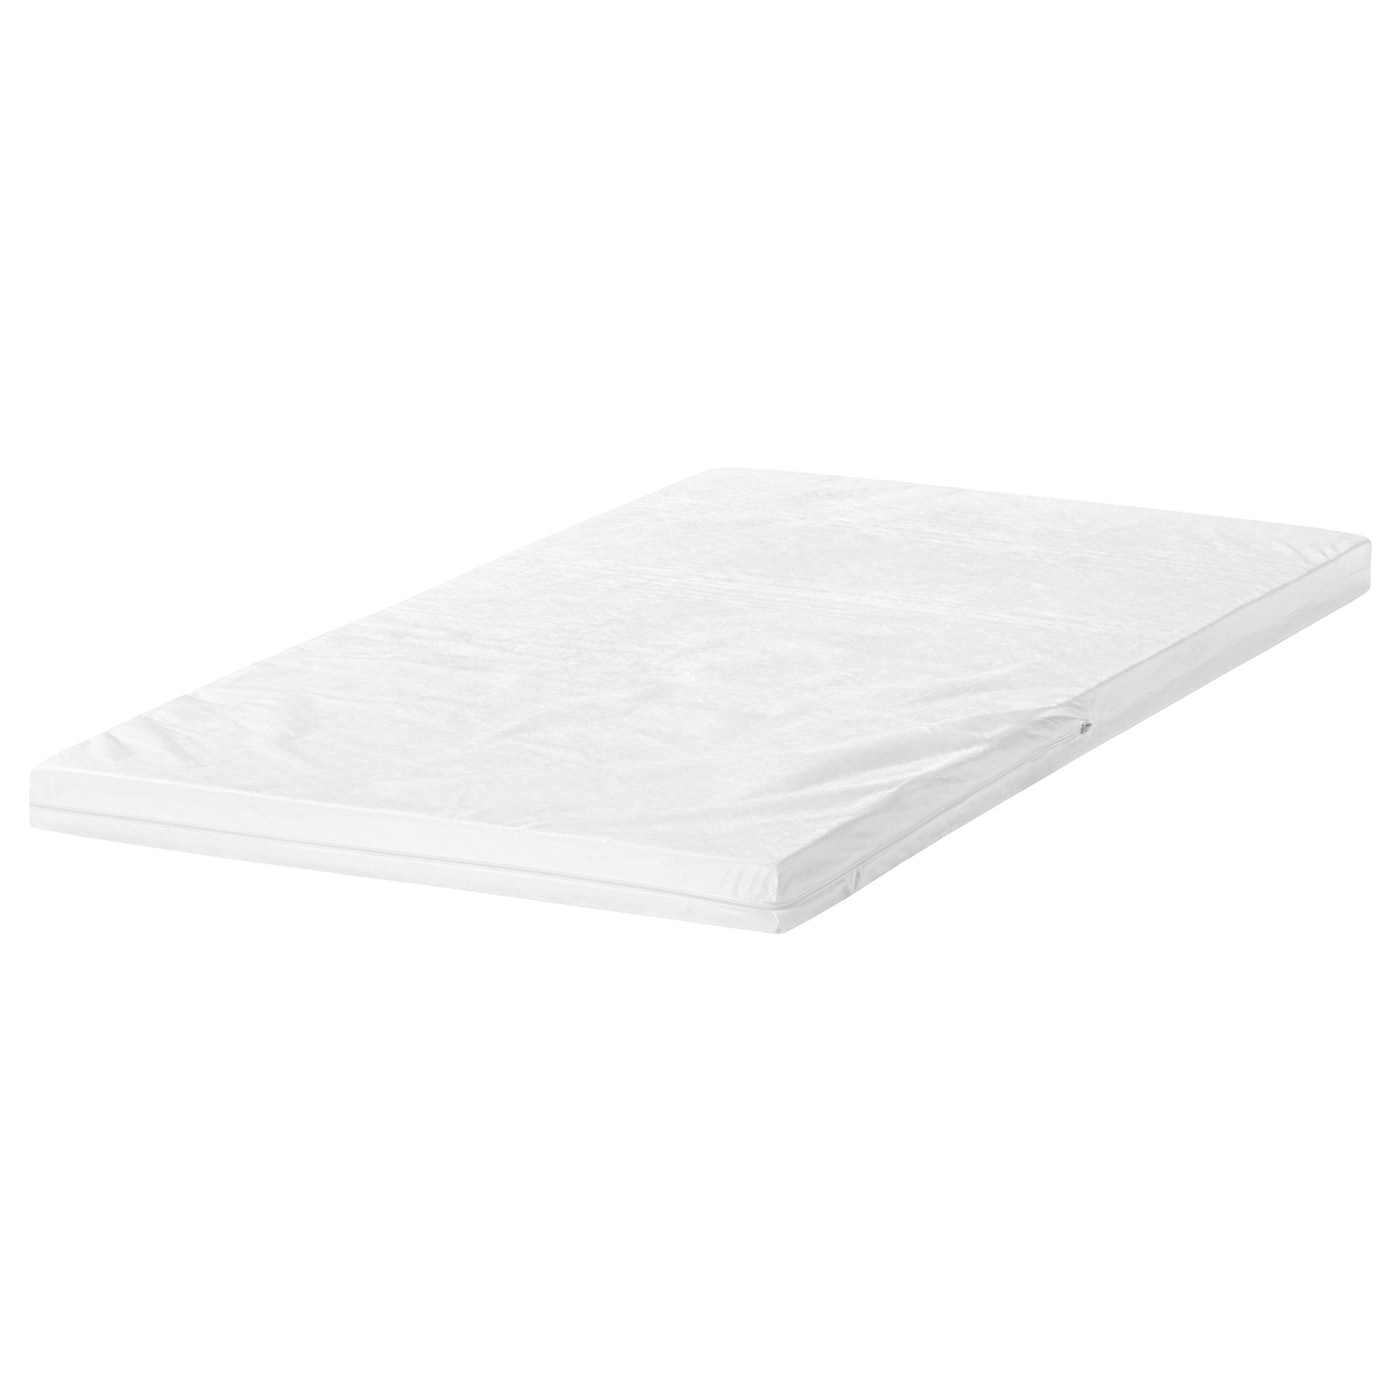 IKEA VYSSA SLAPPNA mattress for cot Suitable for infants and young babies.